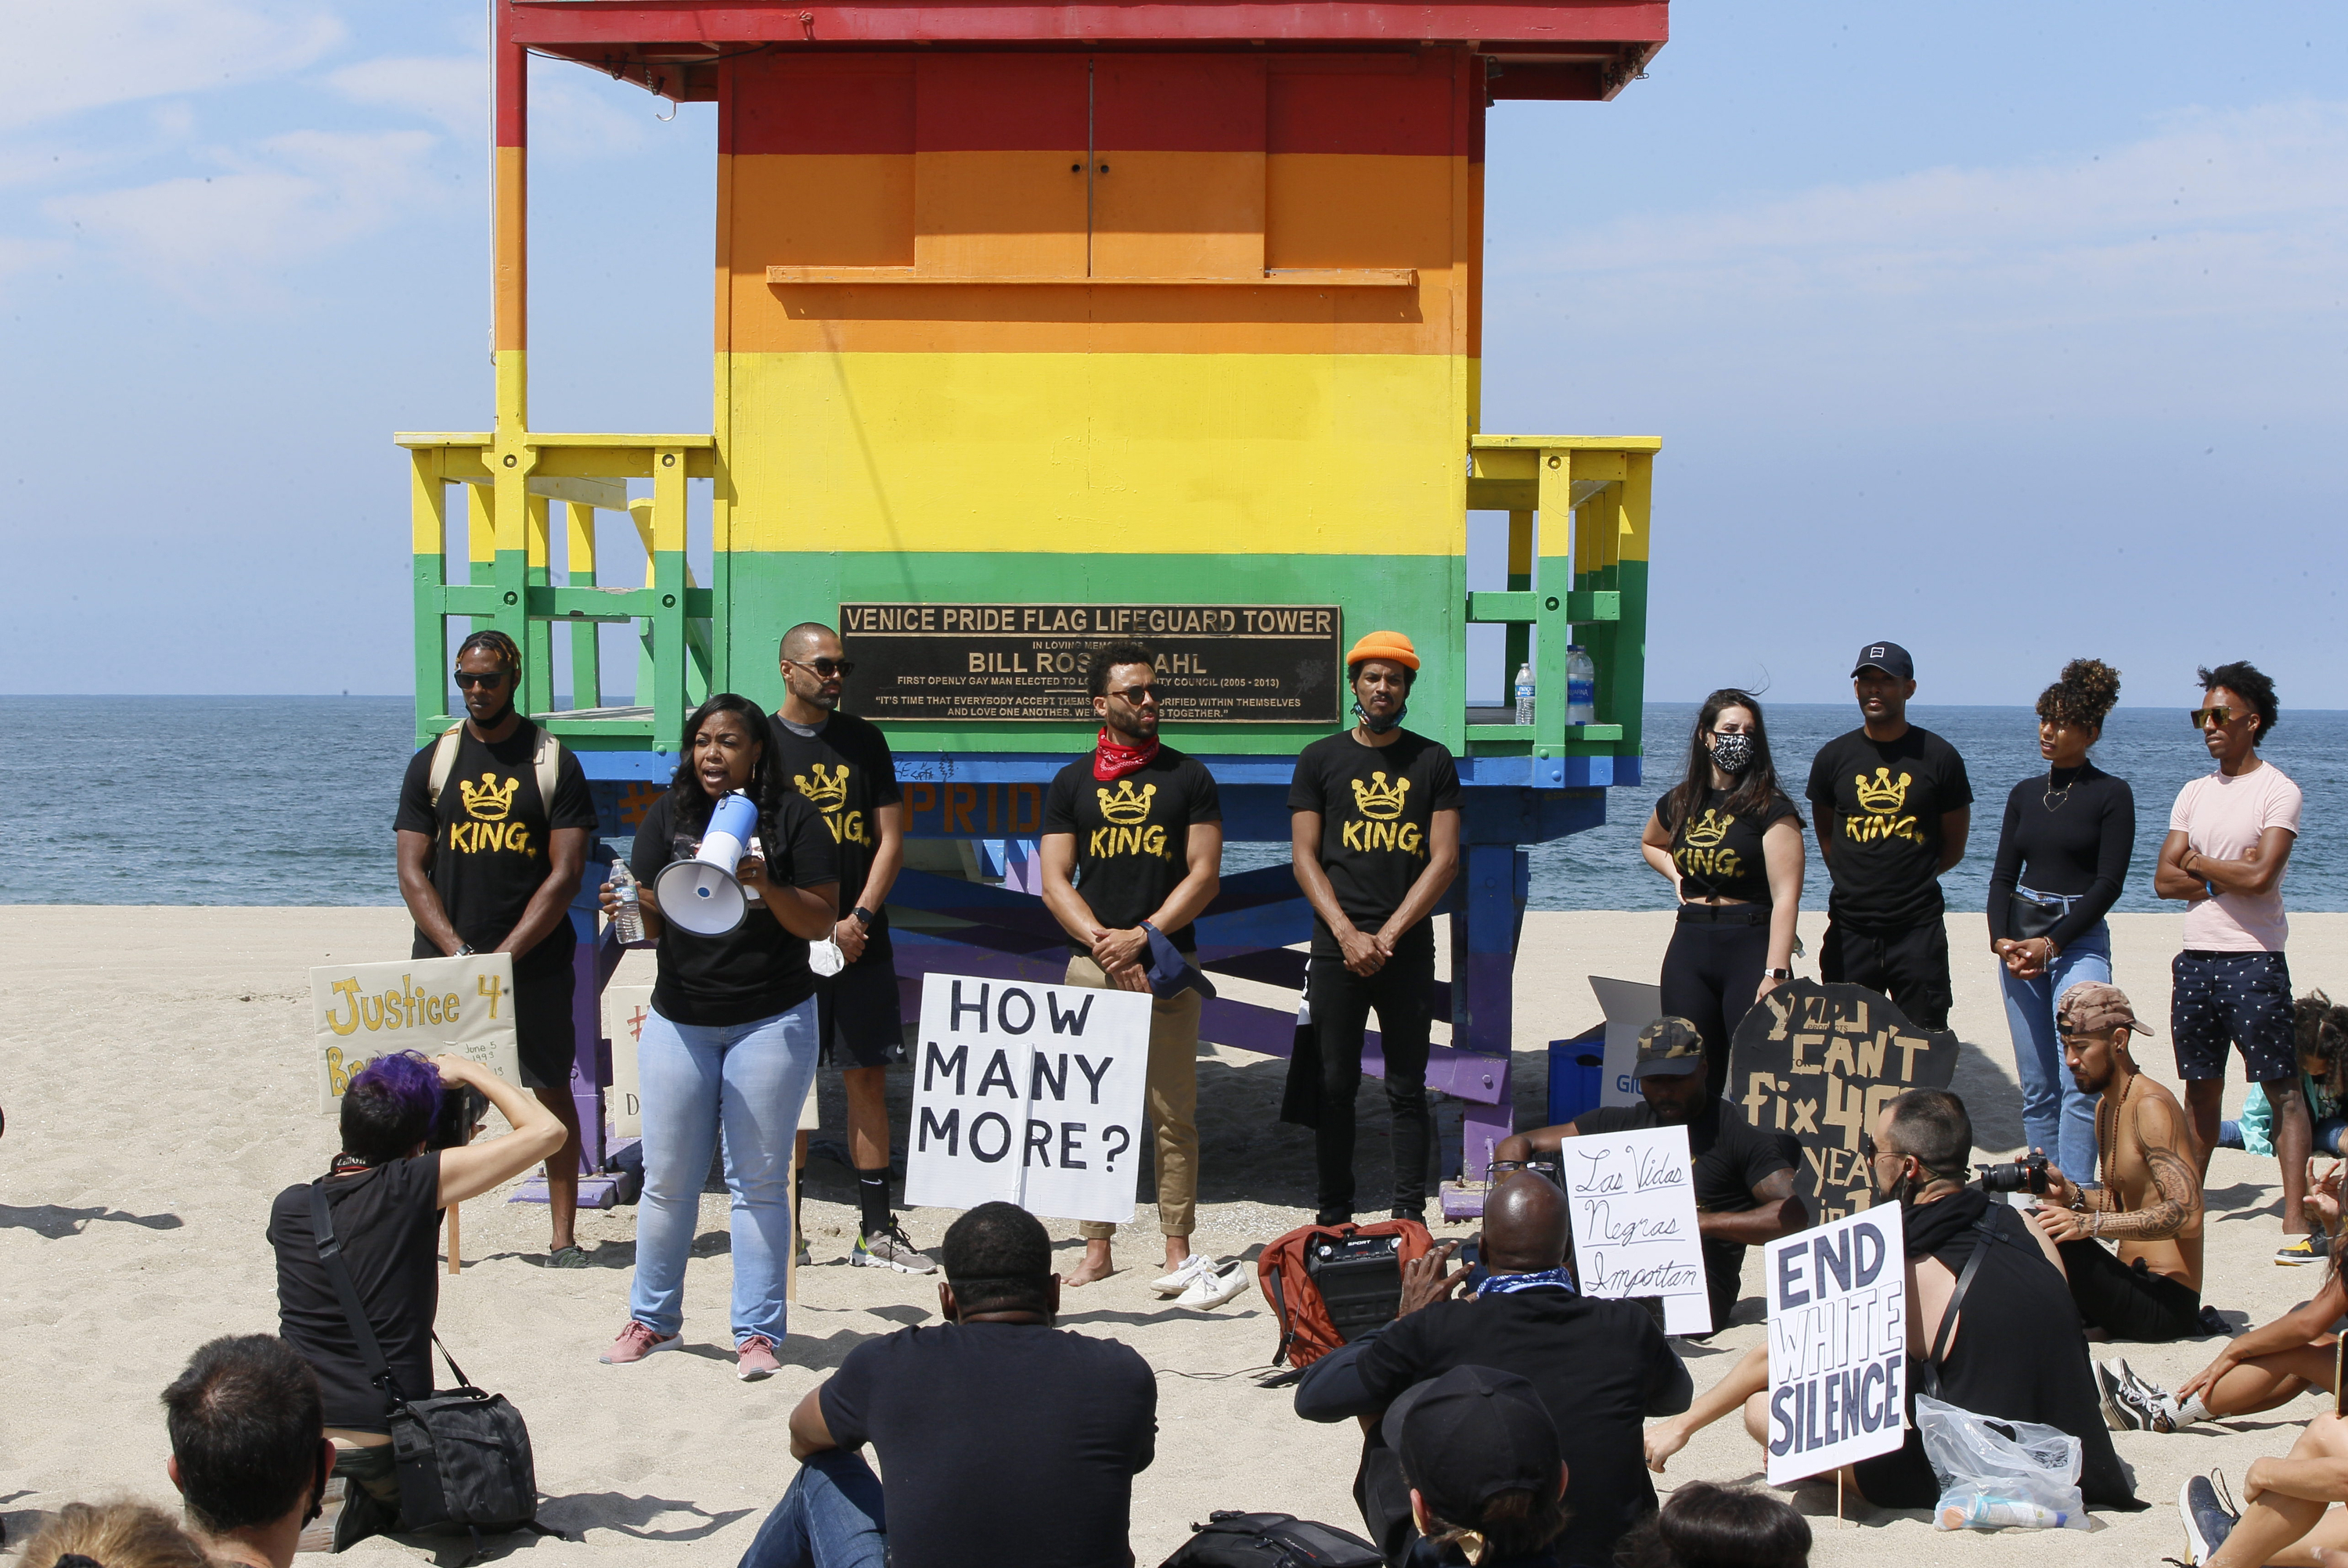 Lora King, Rodney King's daughter, left with the megaphone, holds a Black Lives Matter protest at Venice Beach on June 12.